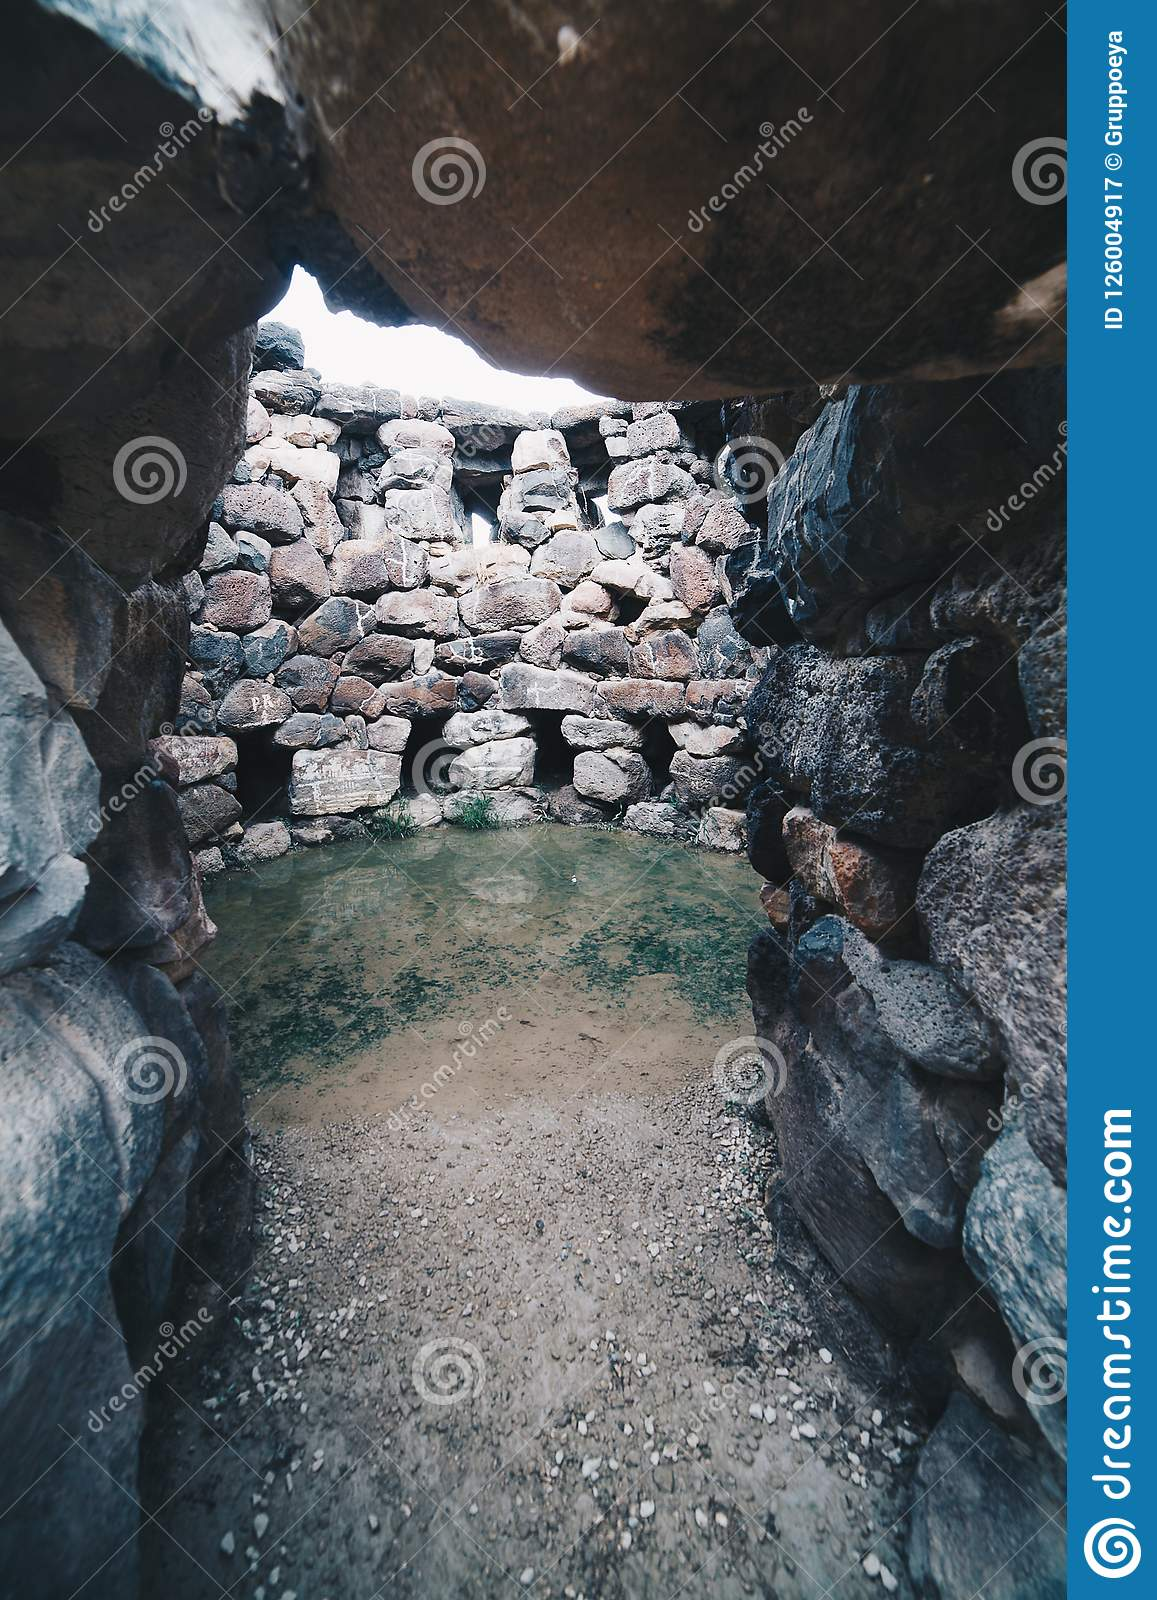 Entrance of a very old tower Nuraghe near Barumini in Sardinia - Italy.